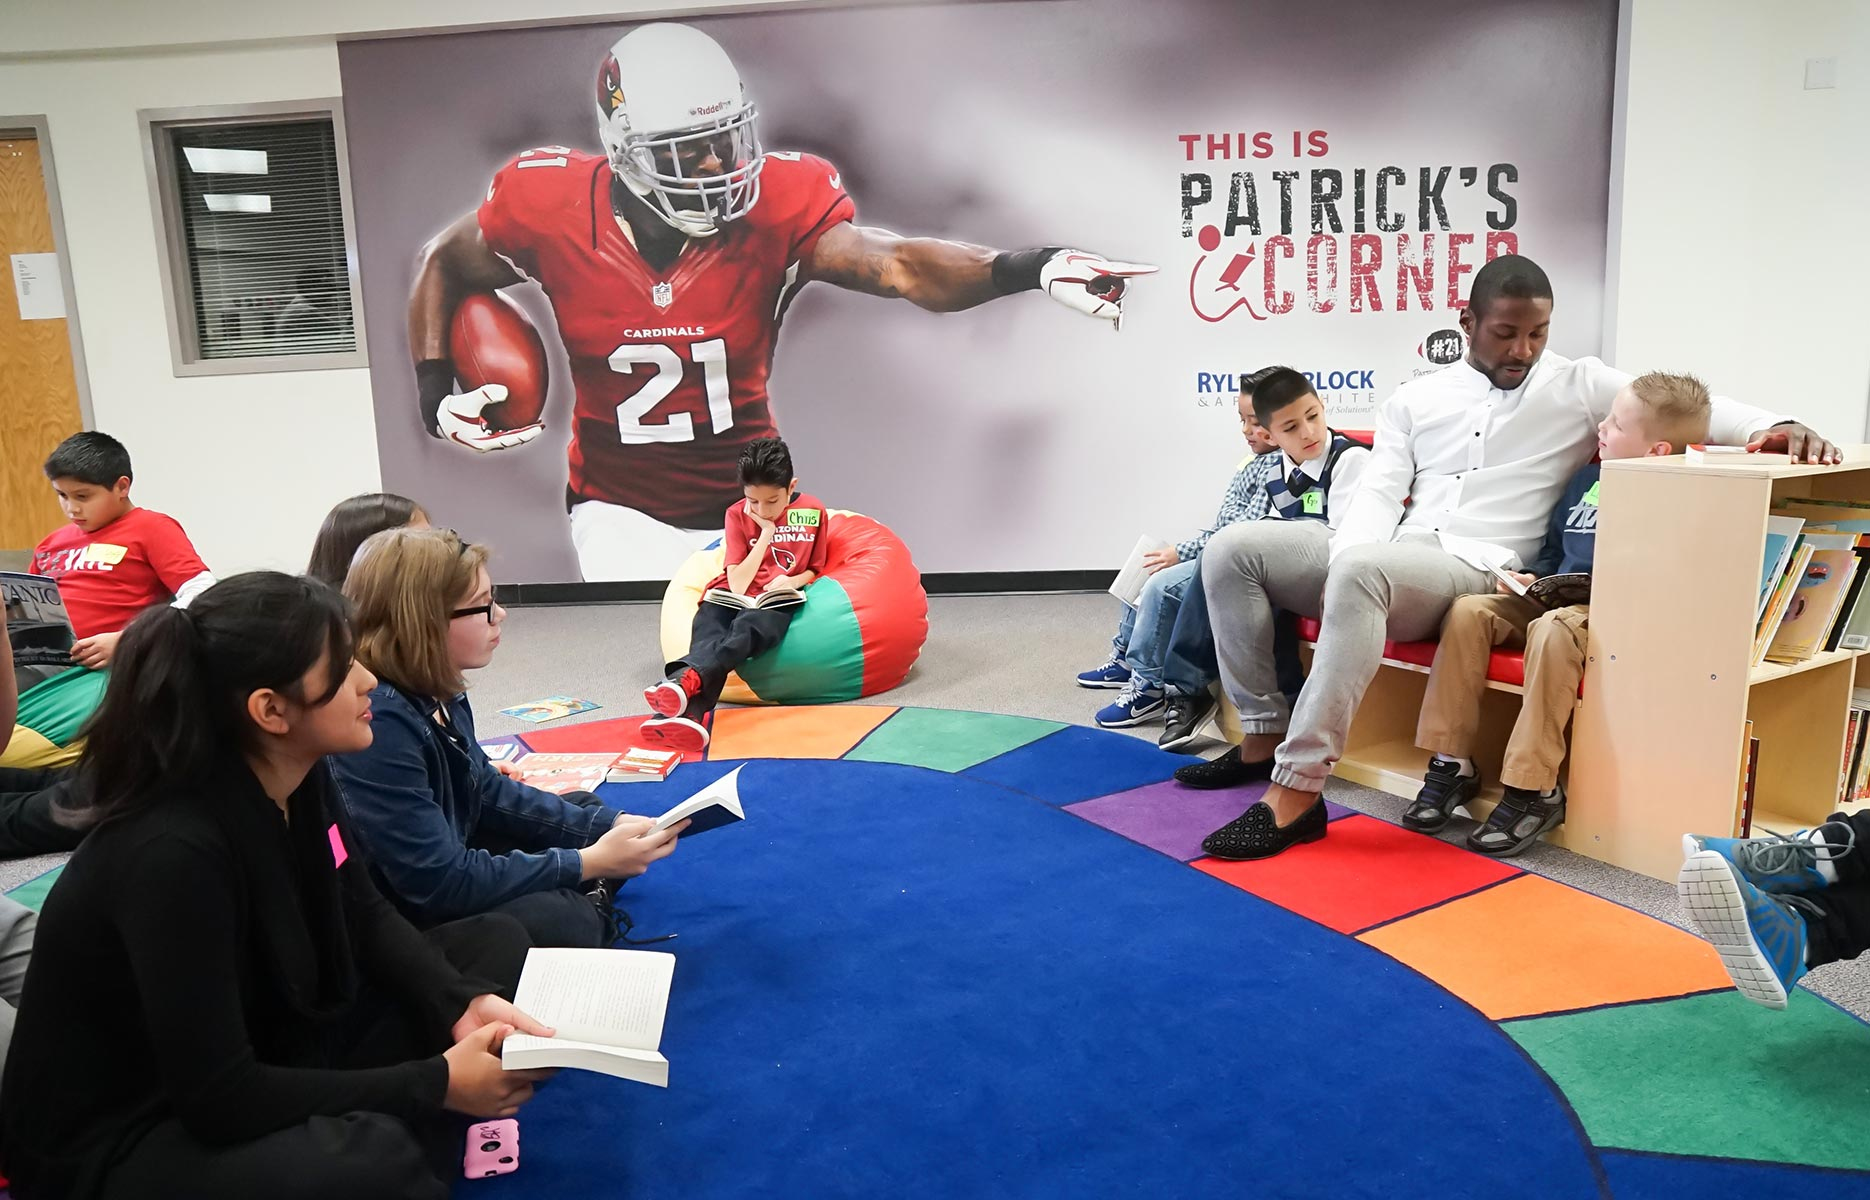 Western Window Systems Teams Up With Arizona Cardinal's Patrick Peterson to Provide At-Risk Students a Safe Place to Read